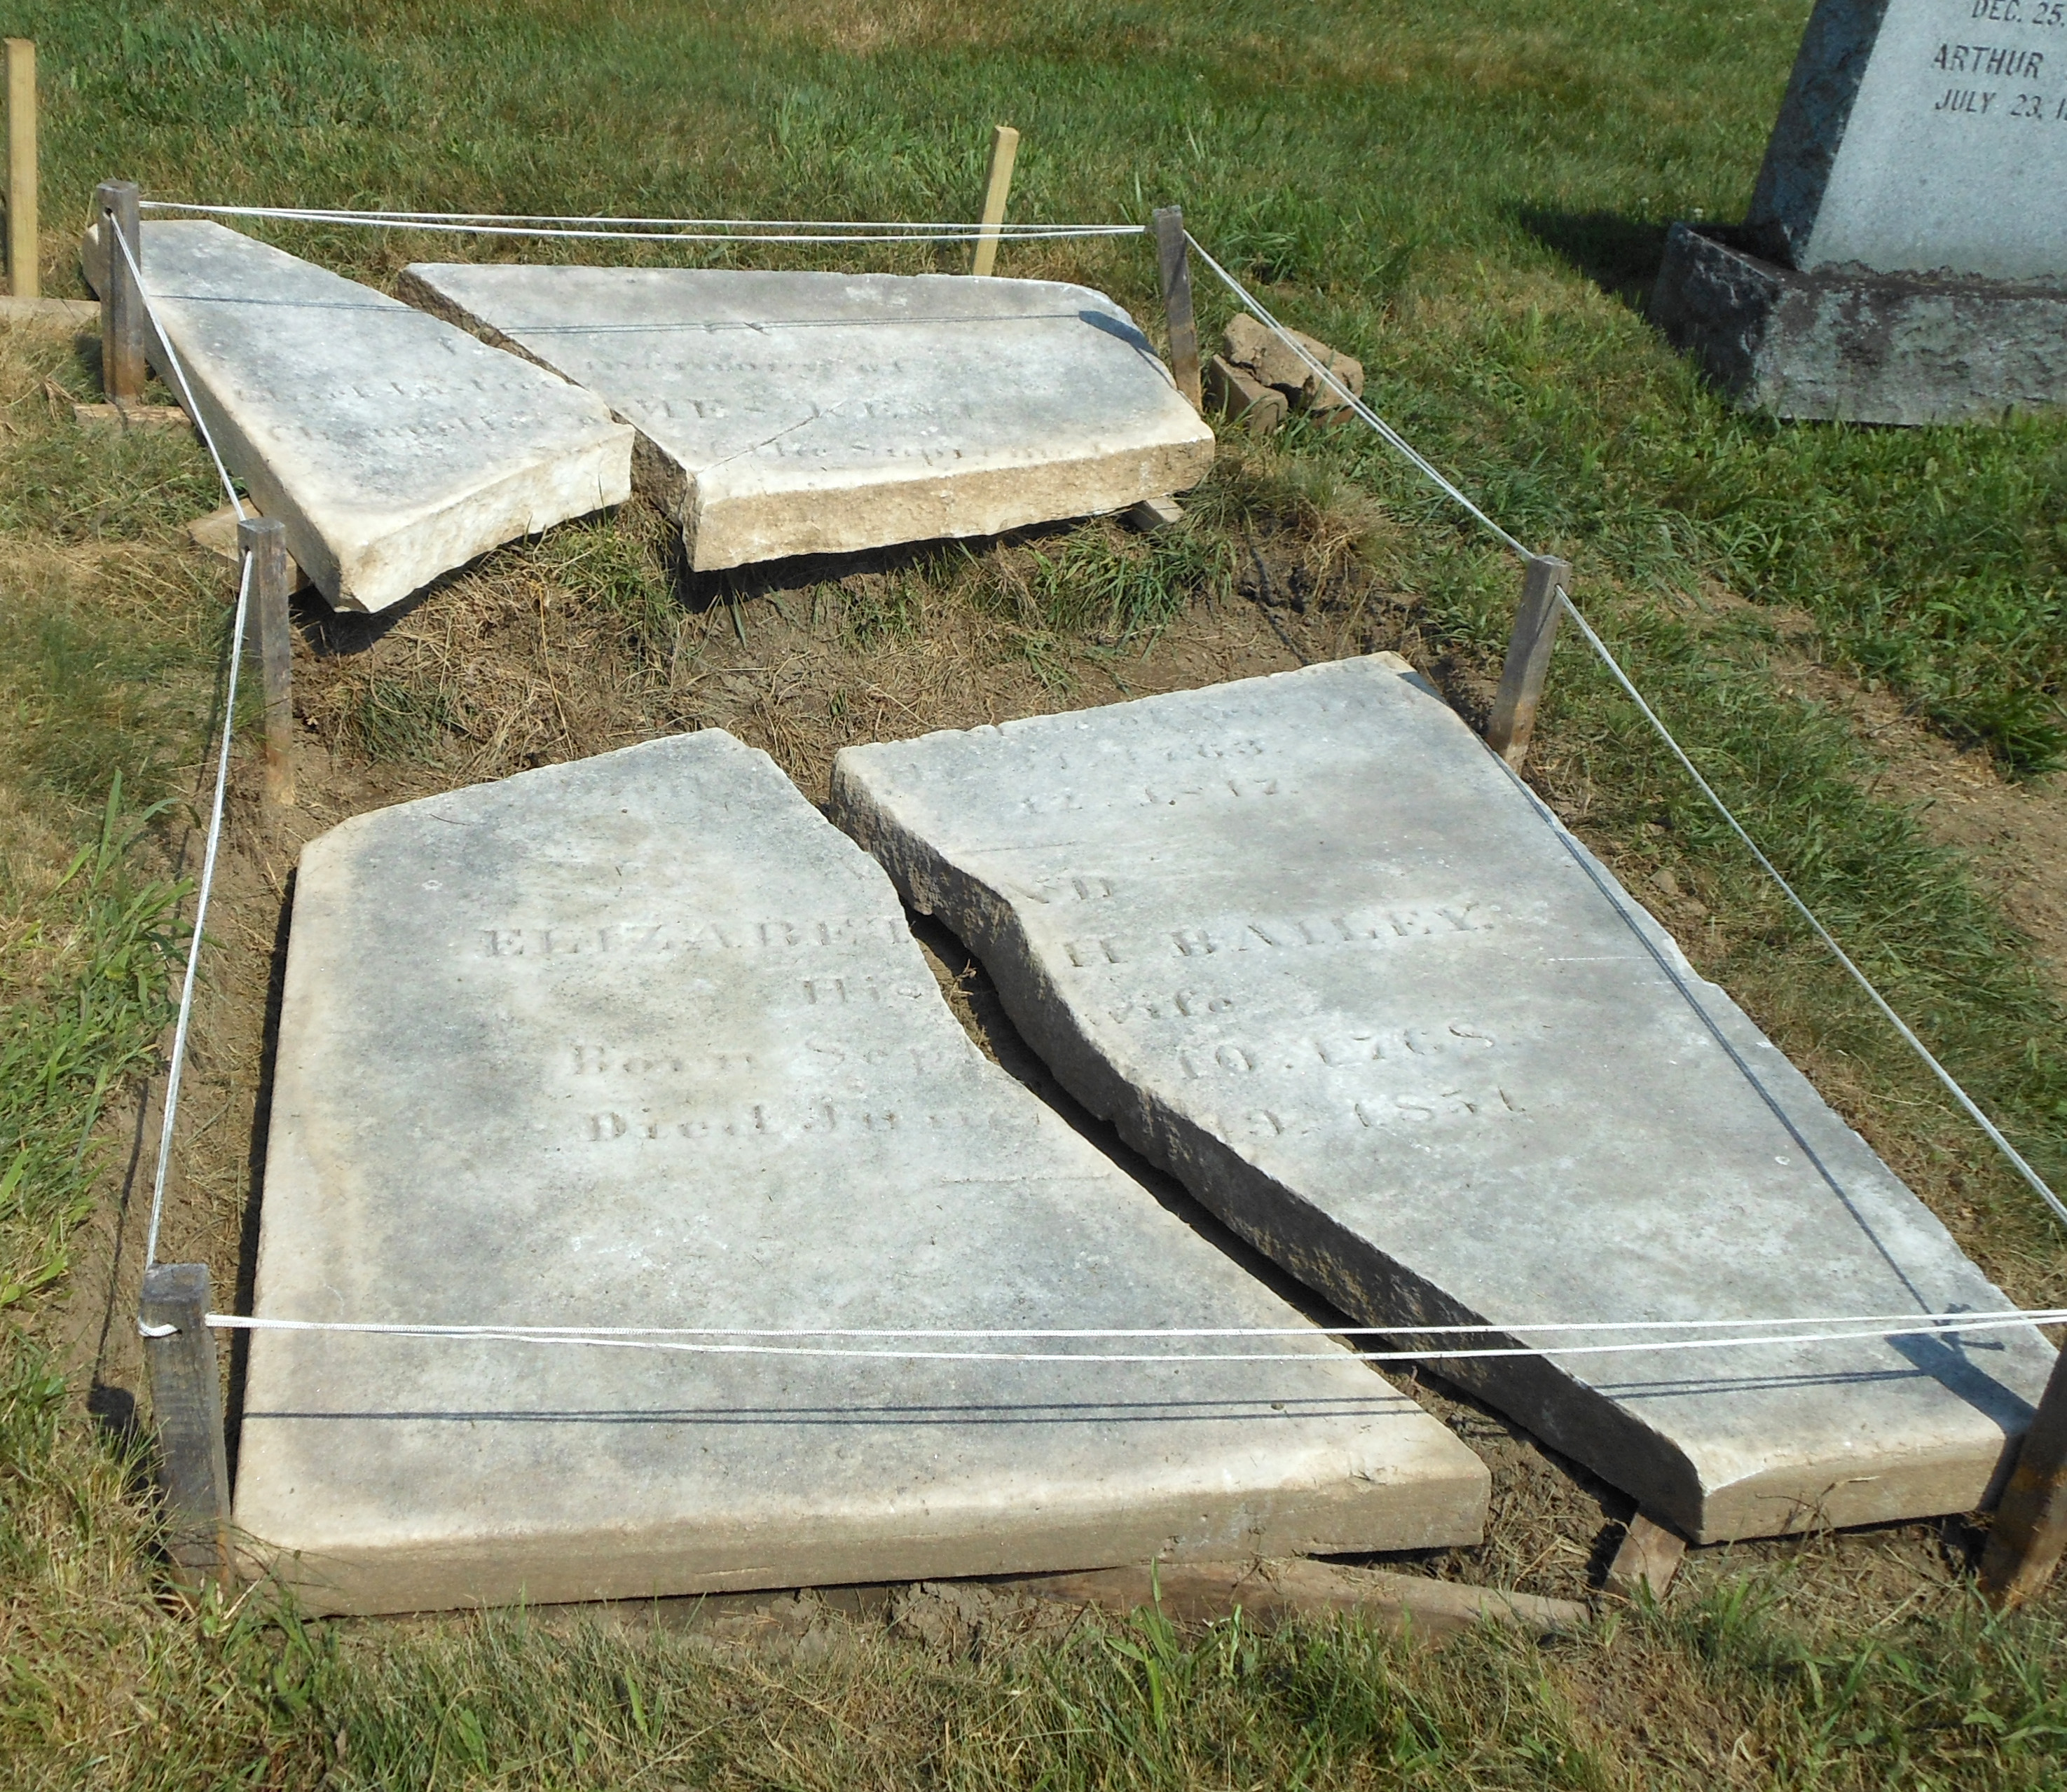 Kent gravestone in four pieces, cleaned and stabilized, ready for next phase